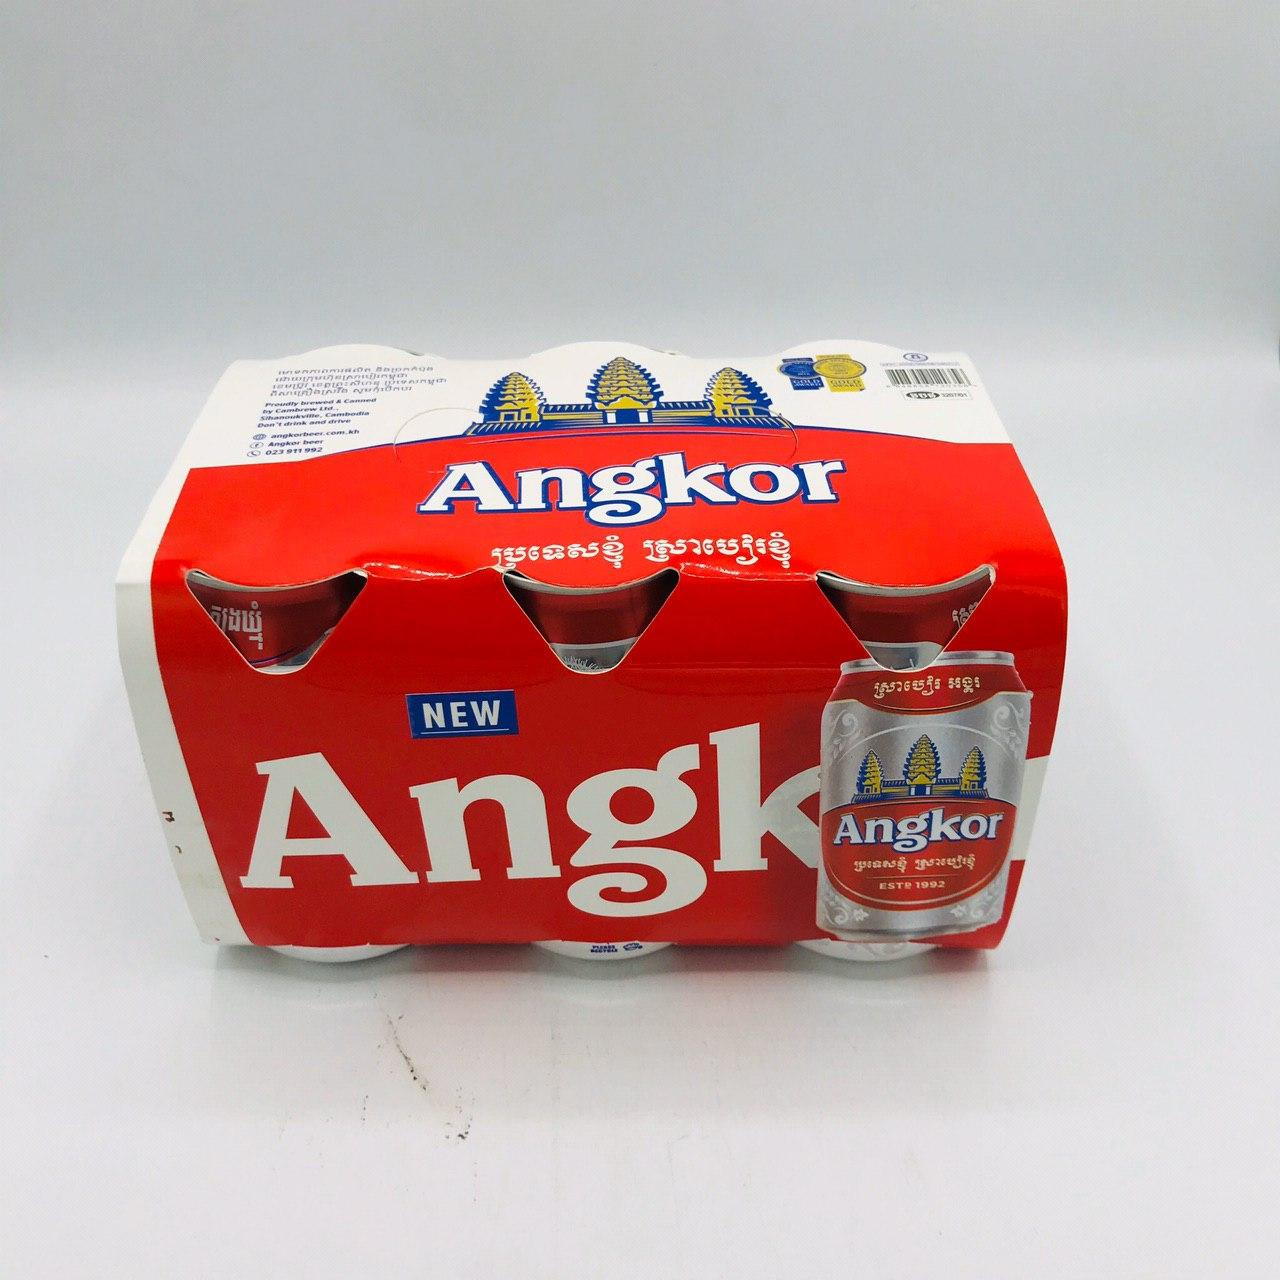 ANGKOR BEER CAN 300MLX6'S(PACK)